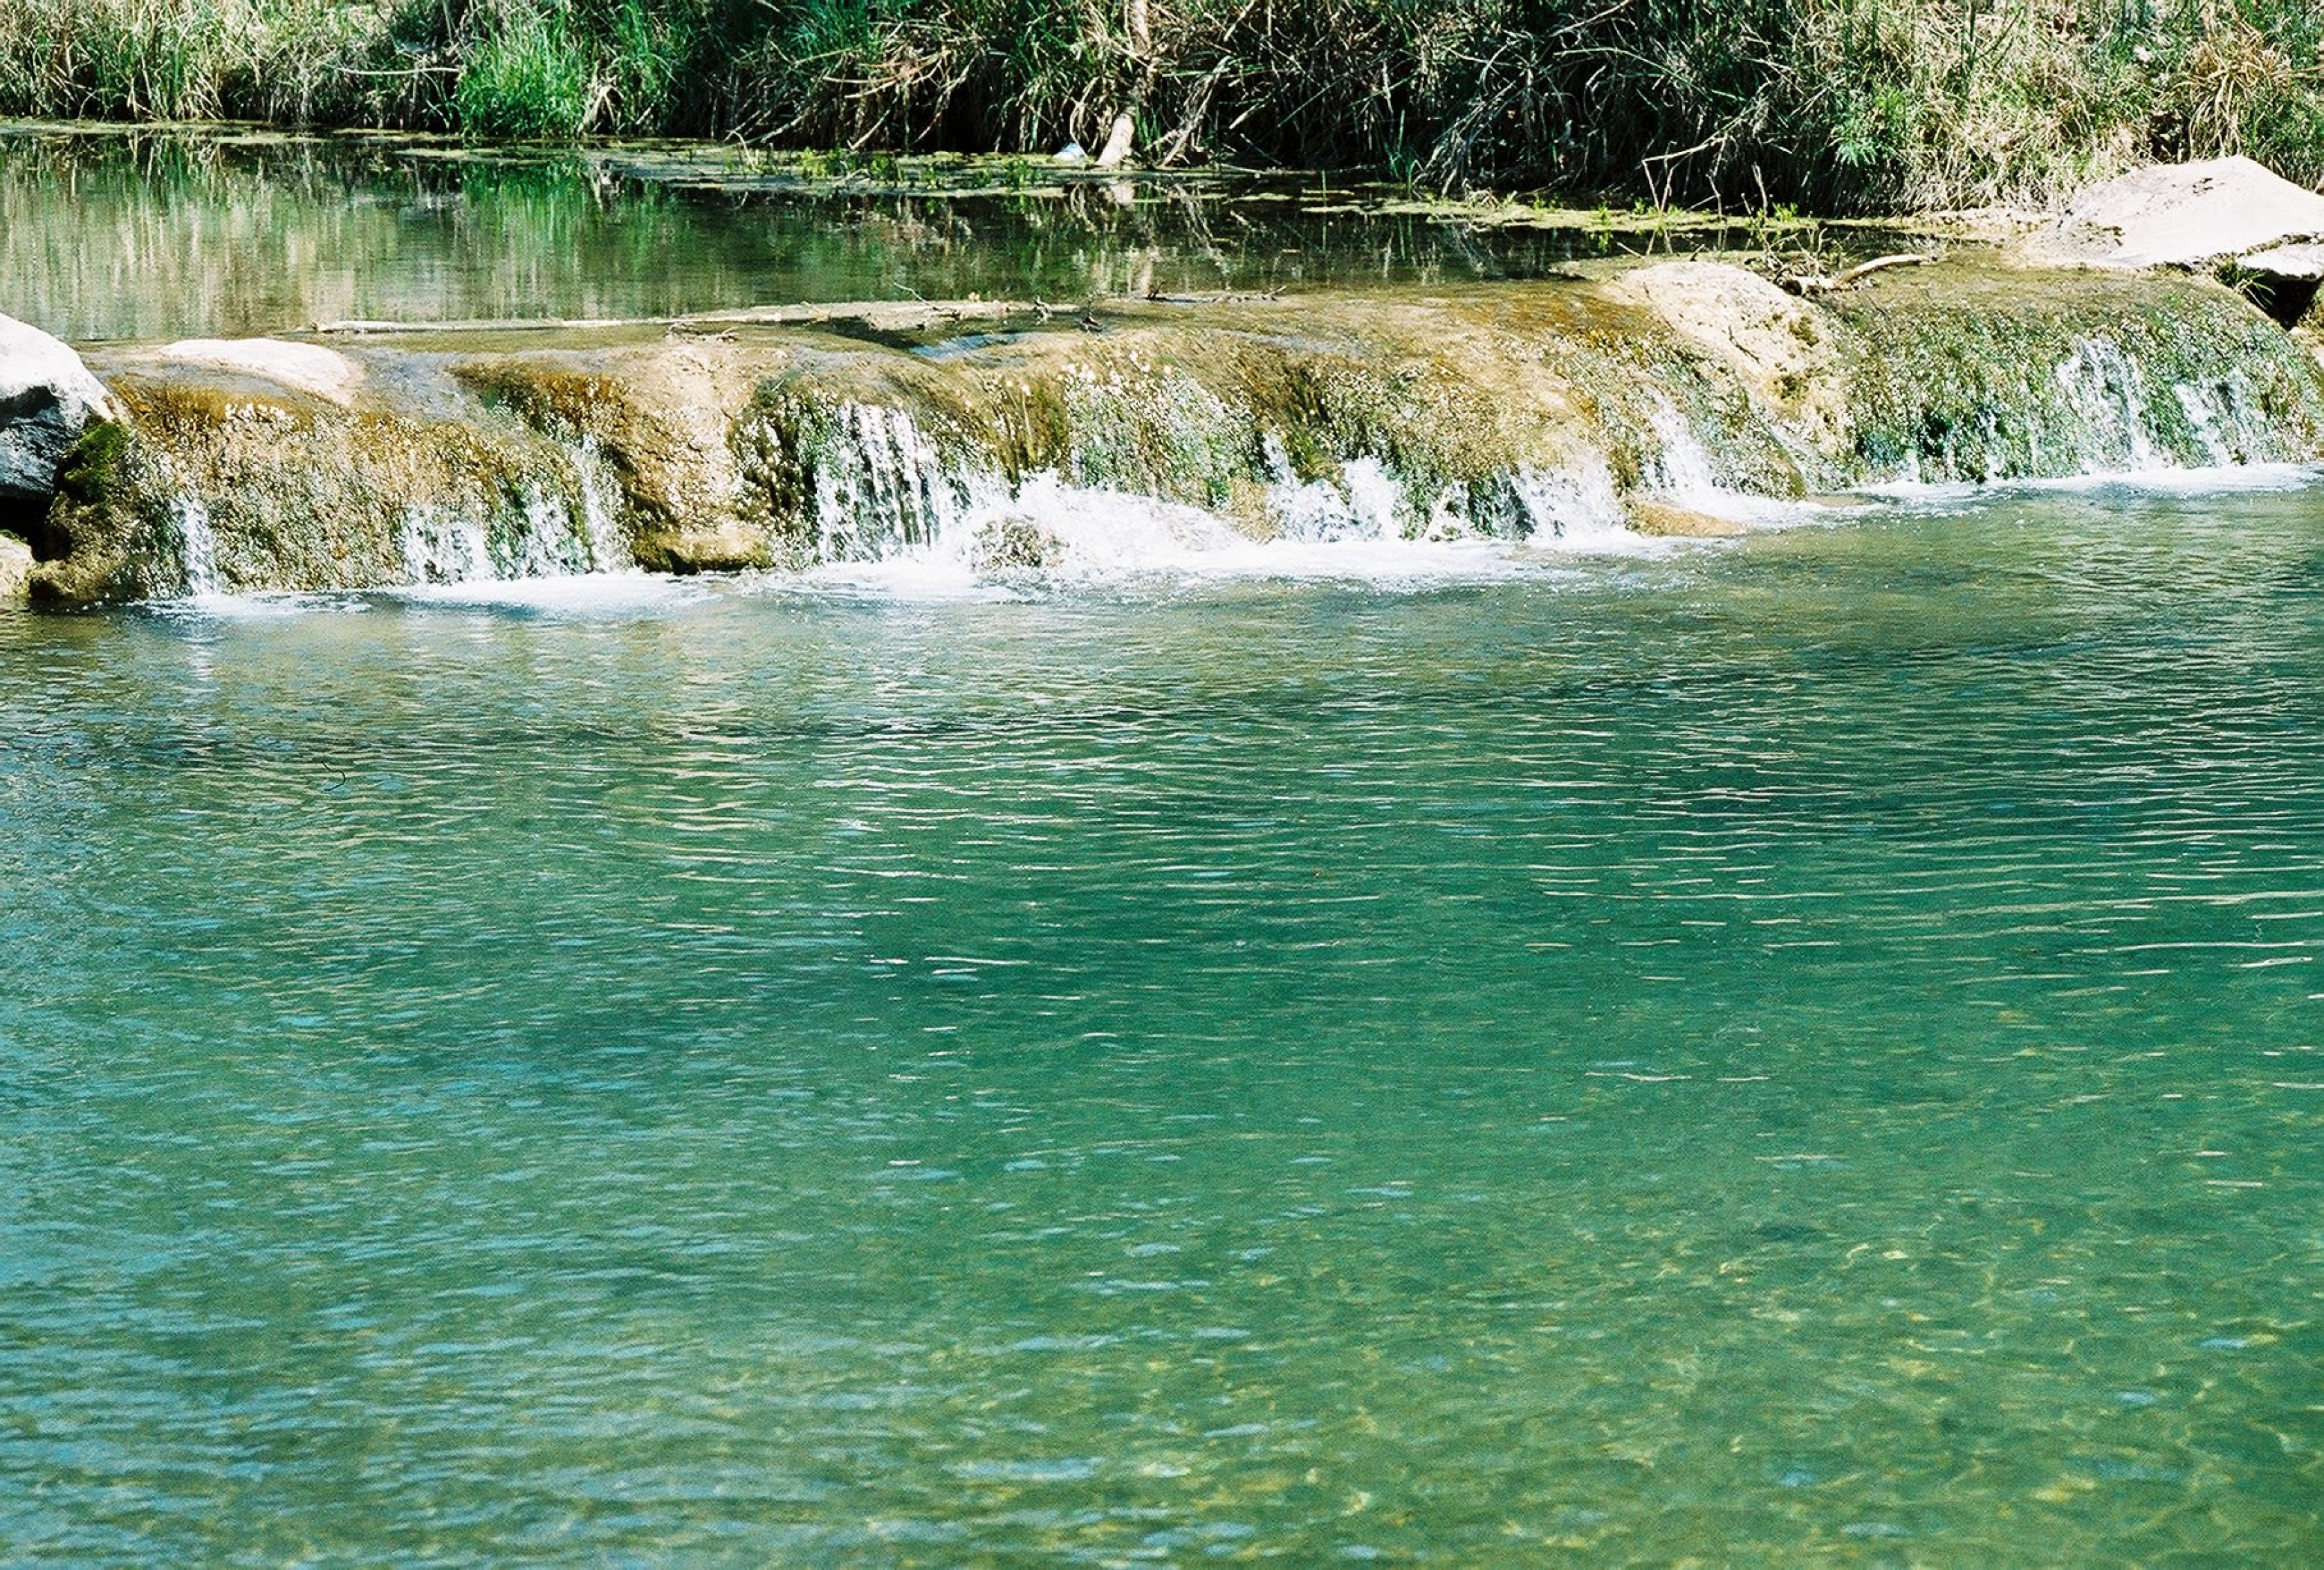 The Travertine Creek is a great swimming hole in Chickasaw.